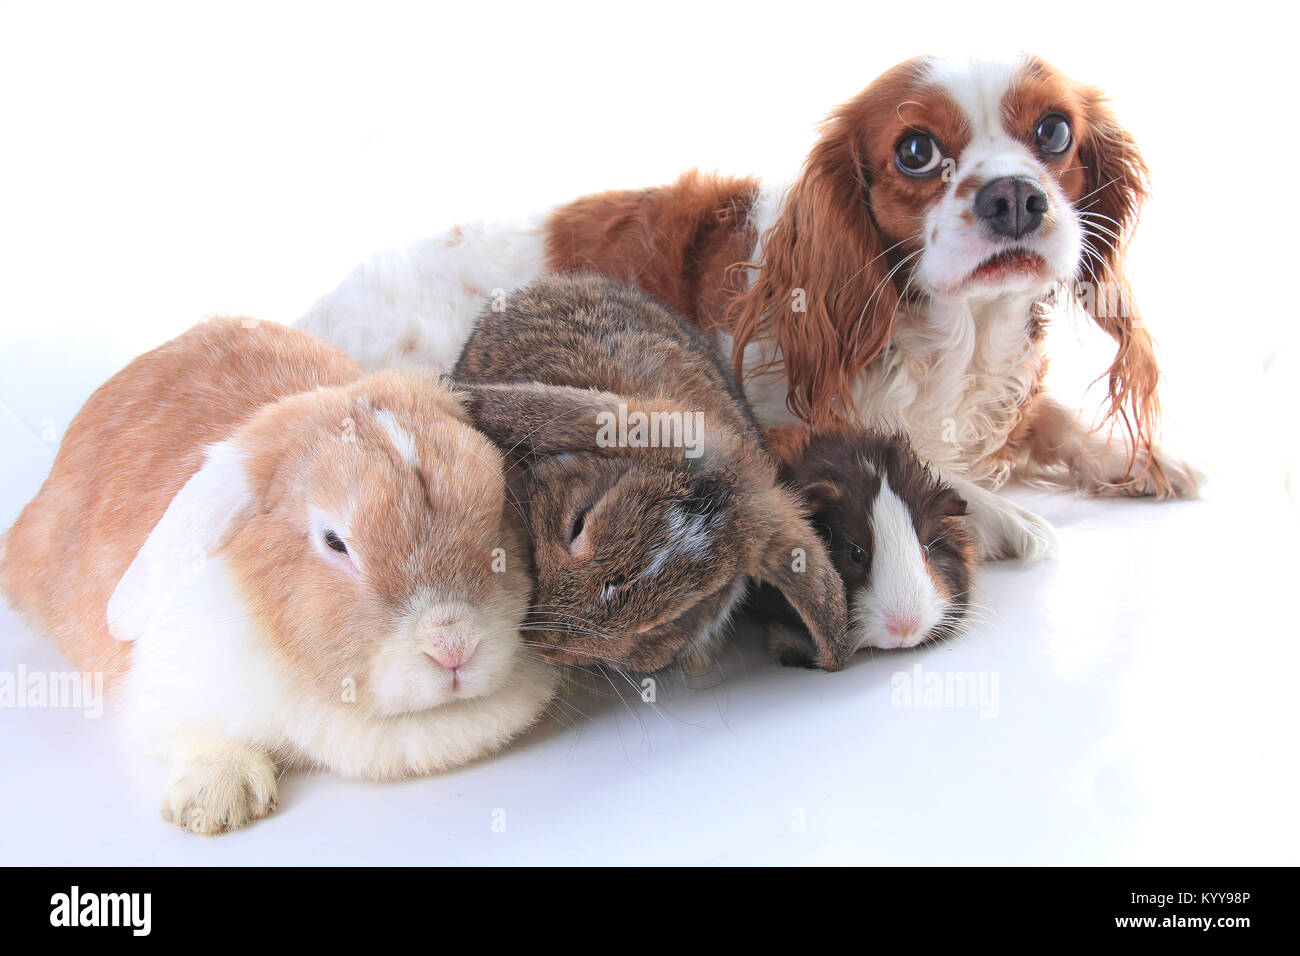 Animals together. Real pet friends. Rabbit dog guinea pig animal friendship. Pets loves each other. Cute lovely Stock Photo